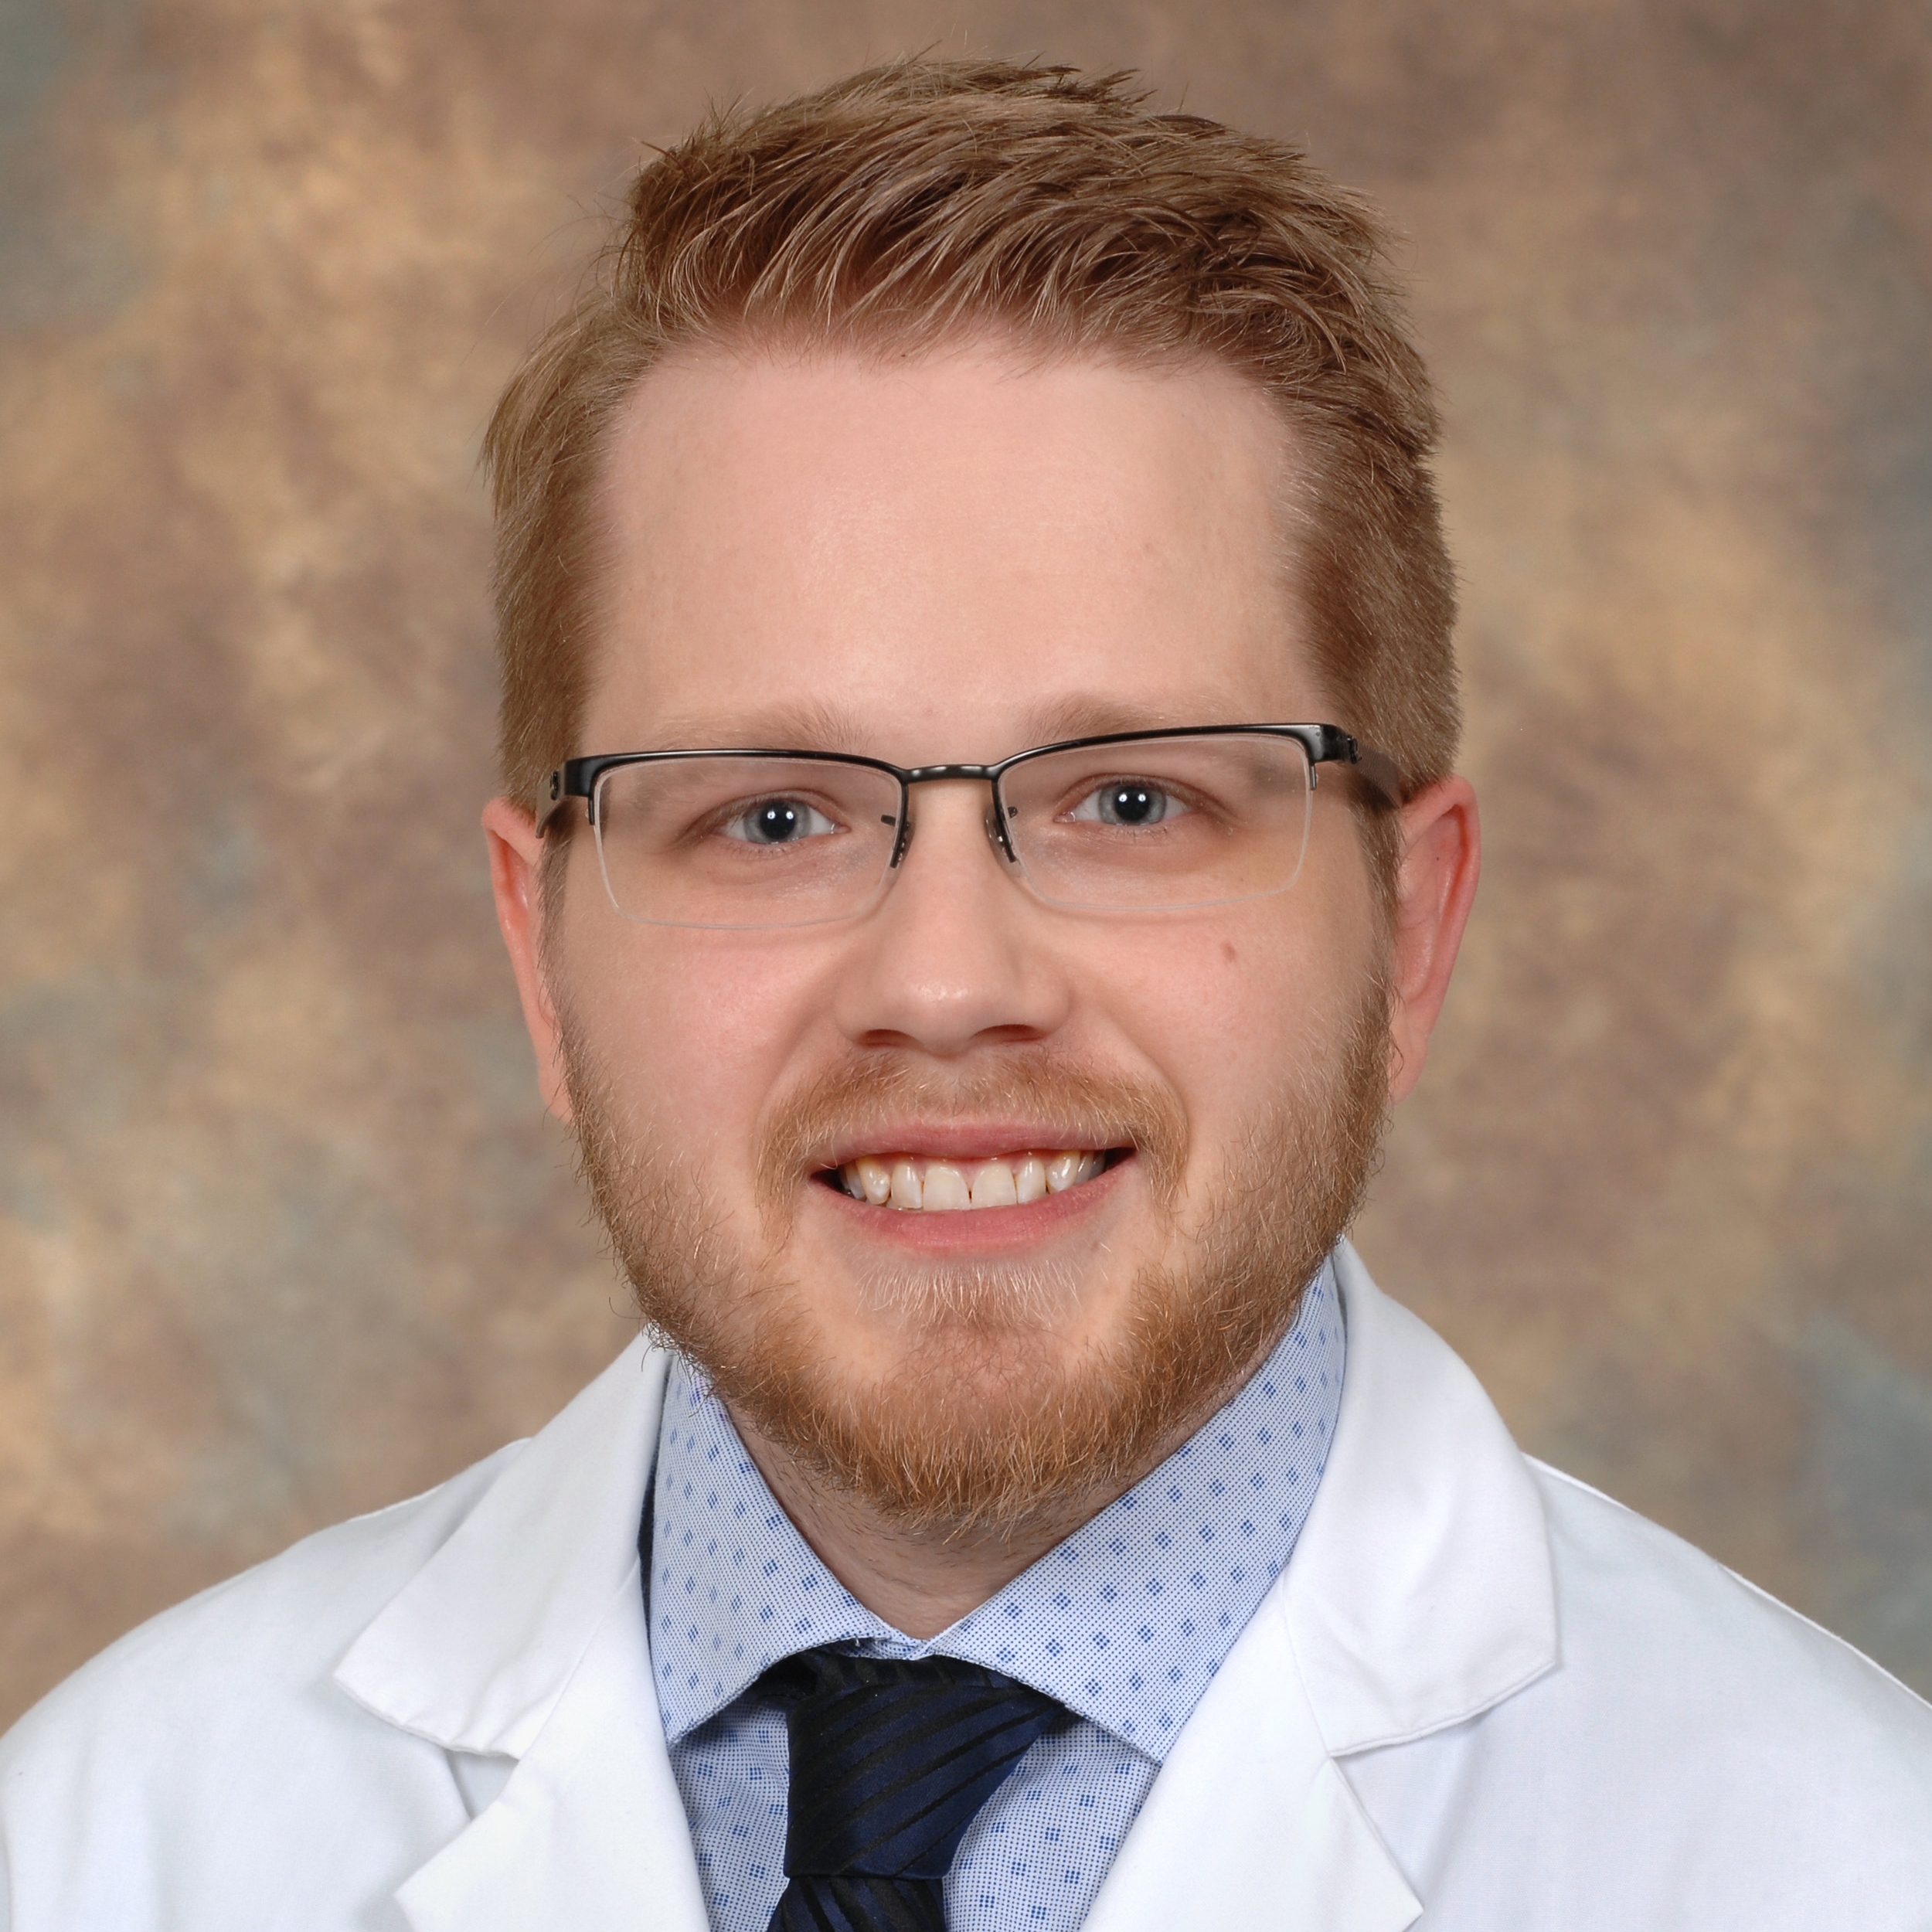 Corey Keeton, MD    Inpatient attending on the Family Medicine Inpatient service, also working in the Department of Psychiatry at the University of Cincinnati doing both inpatient consults and collaborative care.